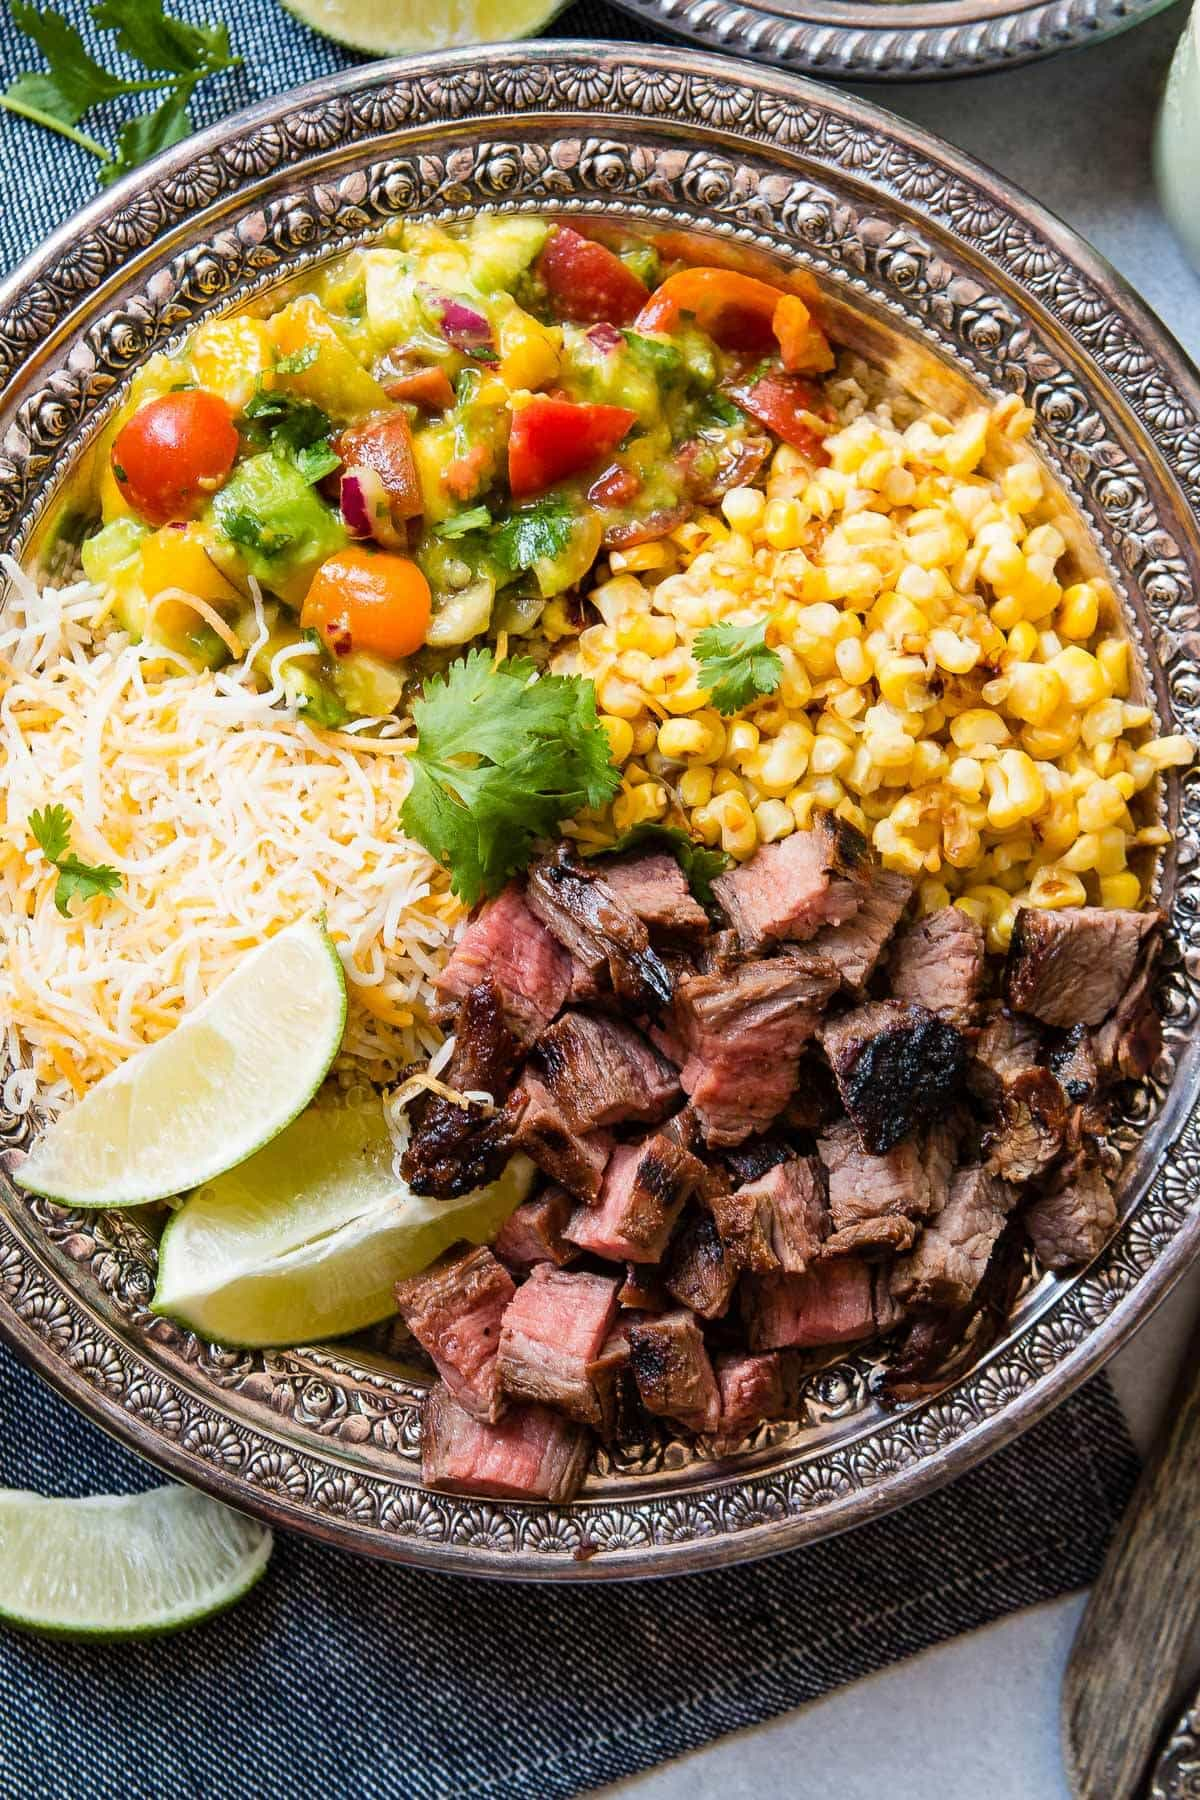 Easy Grilled Steak Burrito Bowls are great for easy meal prep recipes full of corn, quinoa, a killer mango avocado salsa and more!